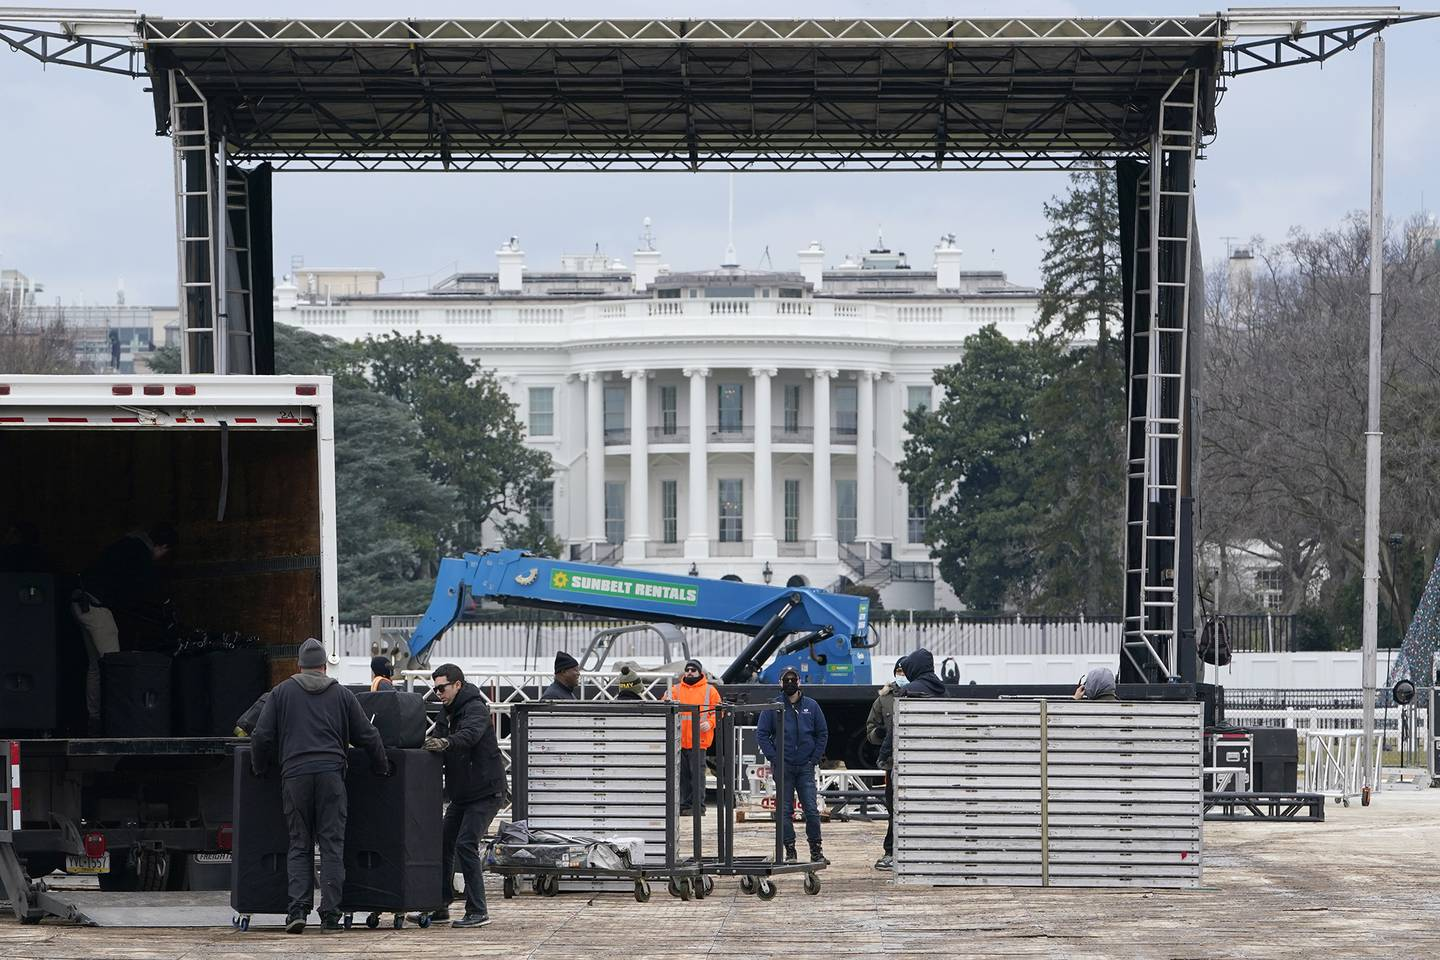 A stage is set up on the Ellipse near the White House in Washington, Monday, Jan. 4, 2021, in preparation for a rally on Jan. 6, the day when Congress is scheduled to meet to formally finalize the presidential election results.